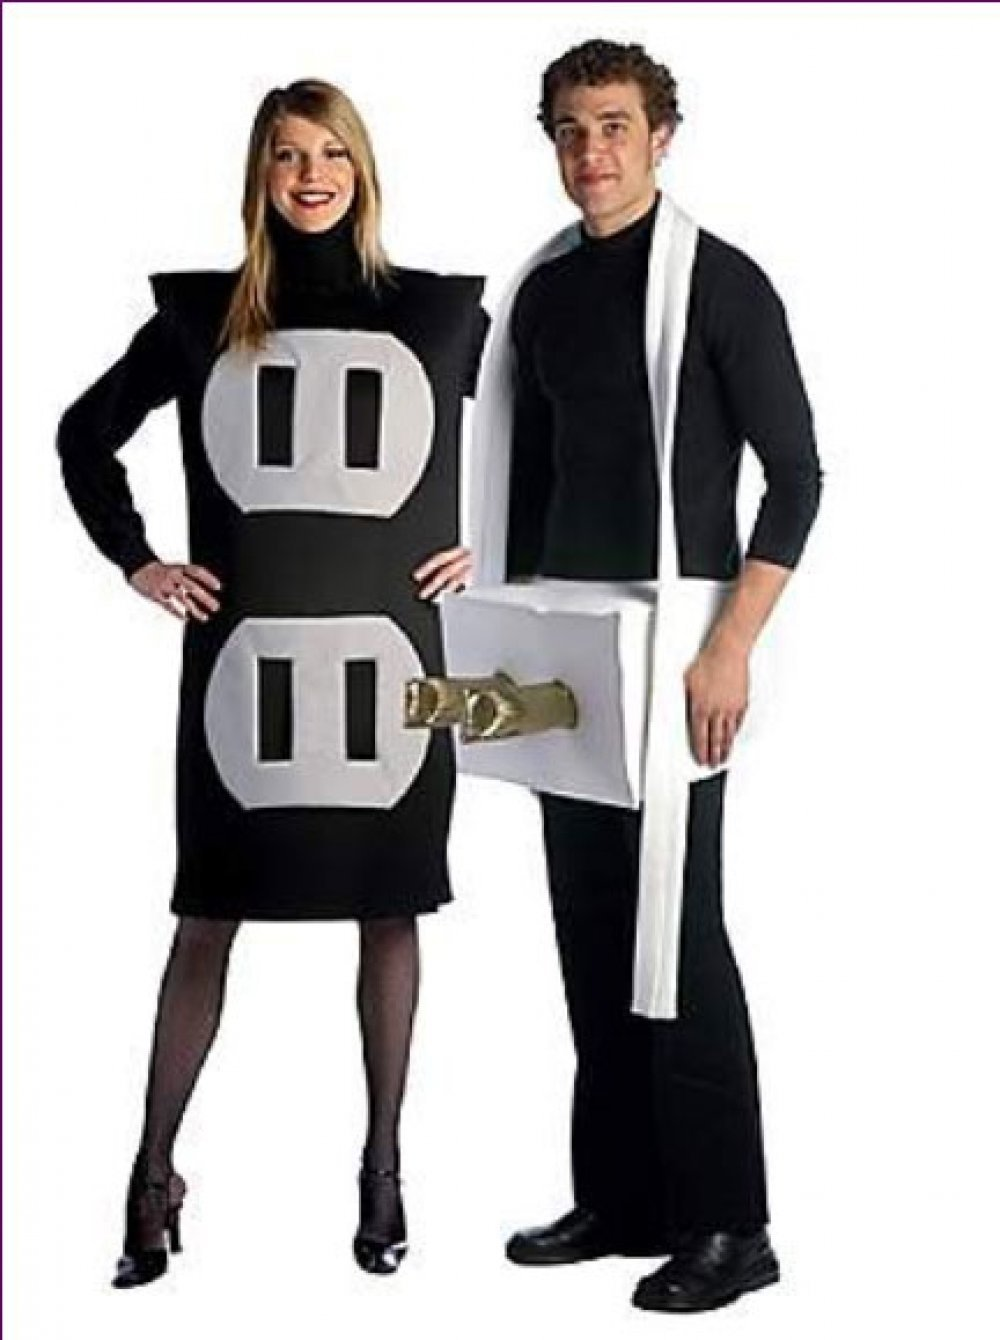 10 Awesome Funny Couple Halloween Costume Ideas funny fun lol couple halloween costumes pics images photos  sc 1 st  Unique Ideas 2018 & 10 Awesome Funny Couple Halloween Costume Ideas